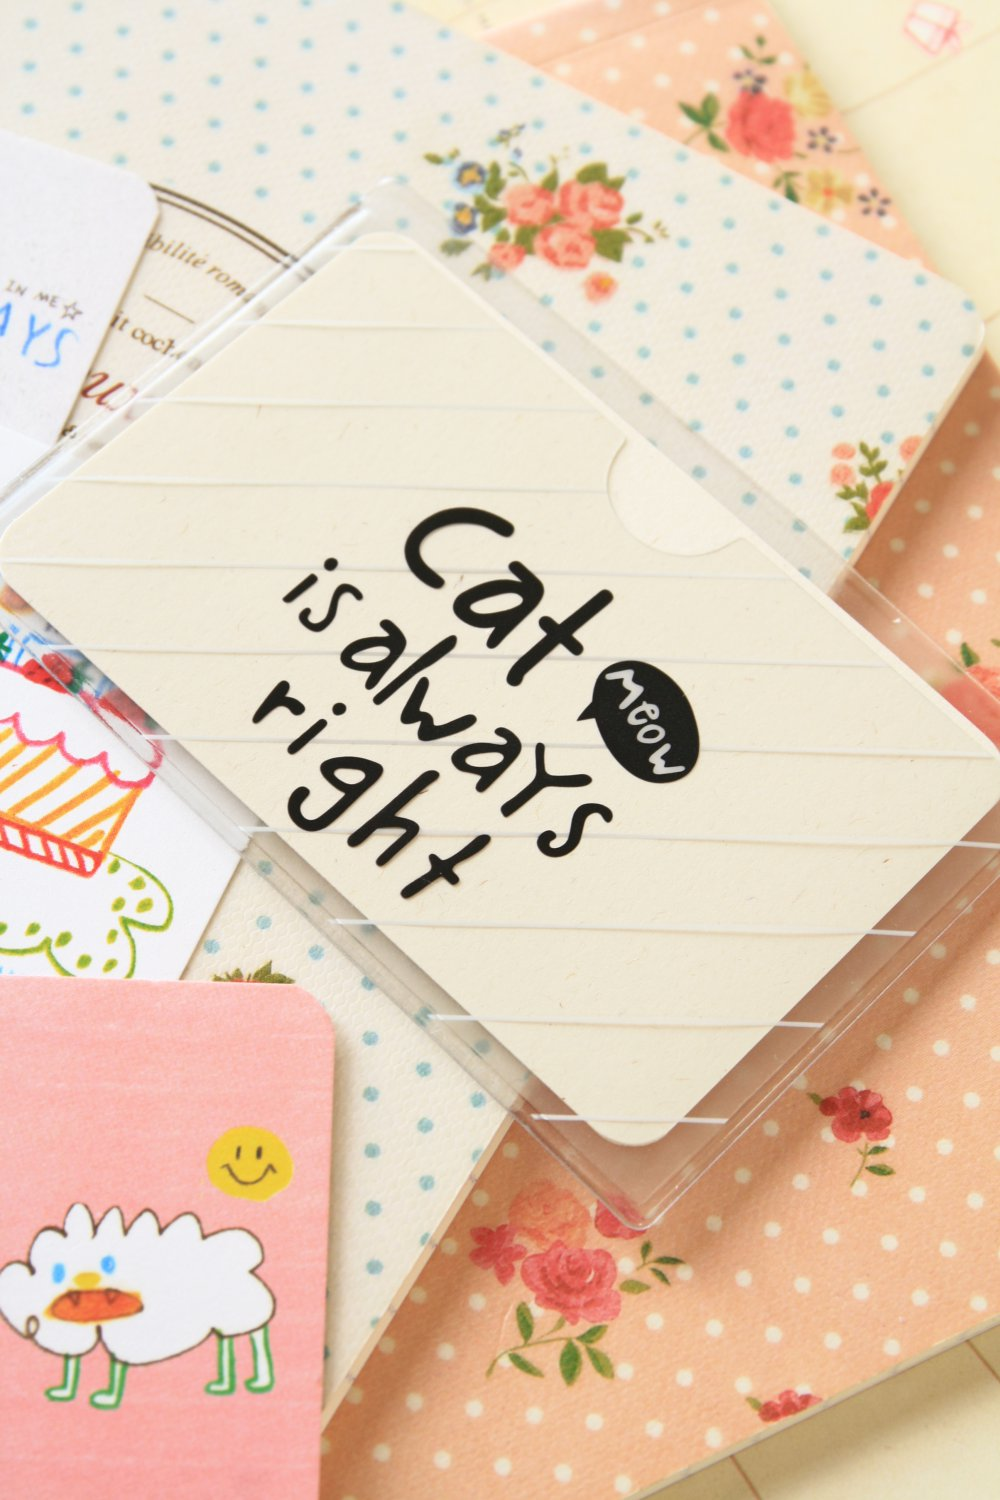 05 Meow Cat cartoon card holder